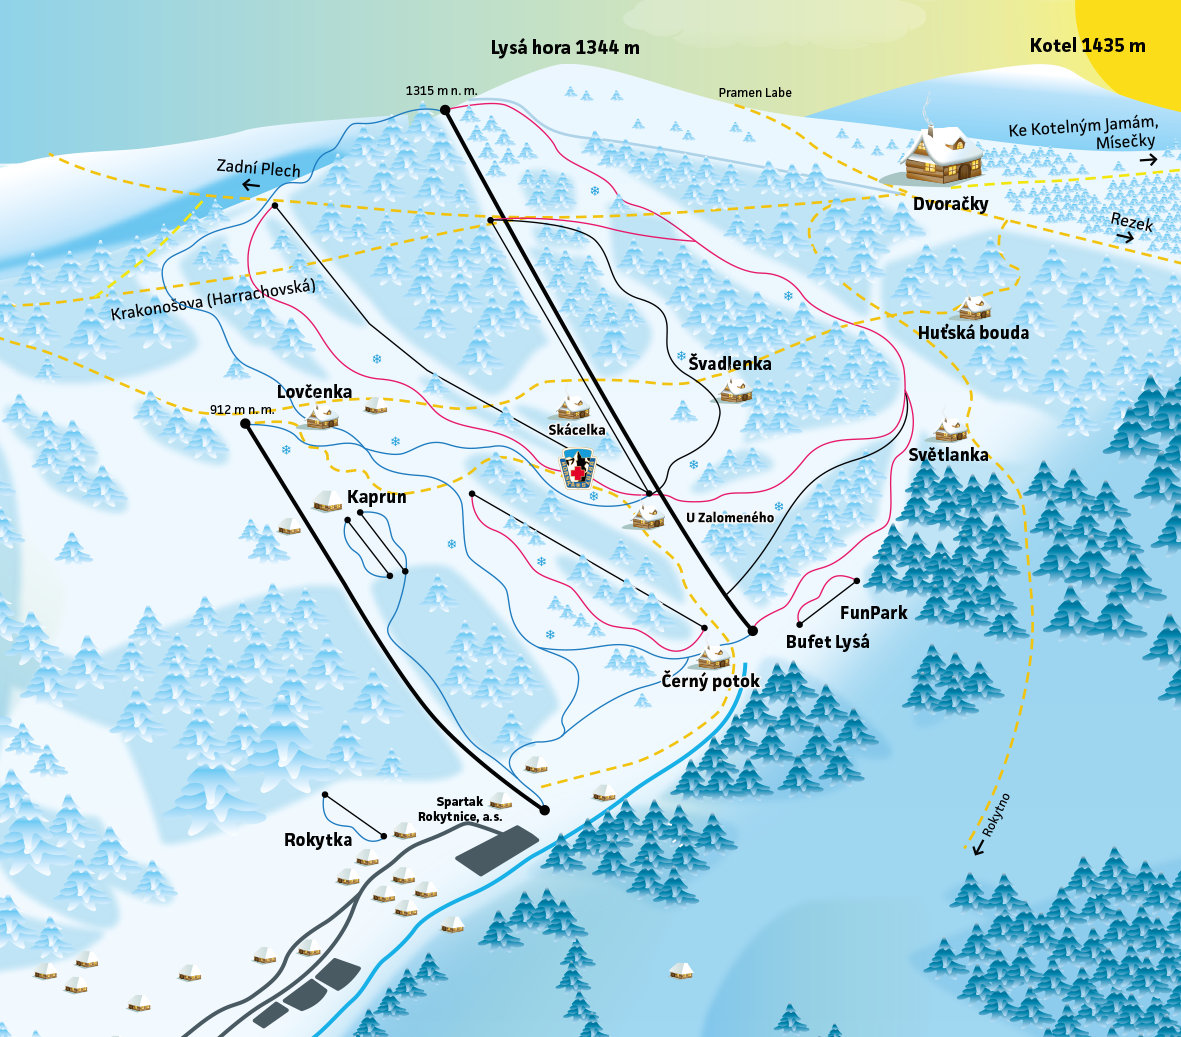 Map of the Ski resort